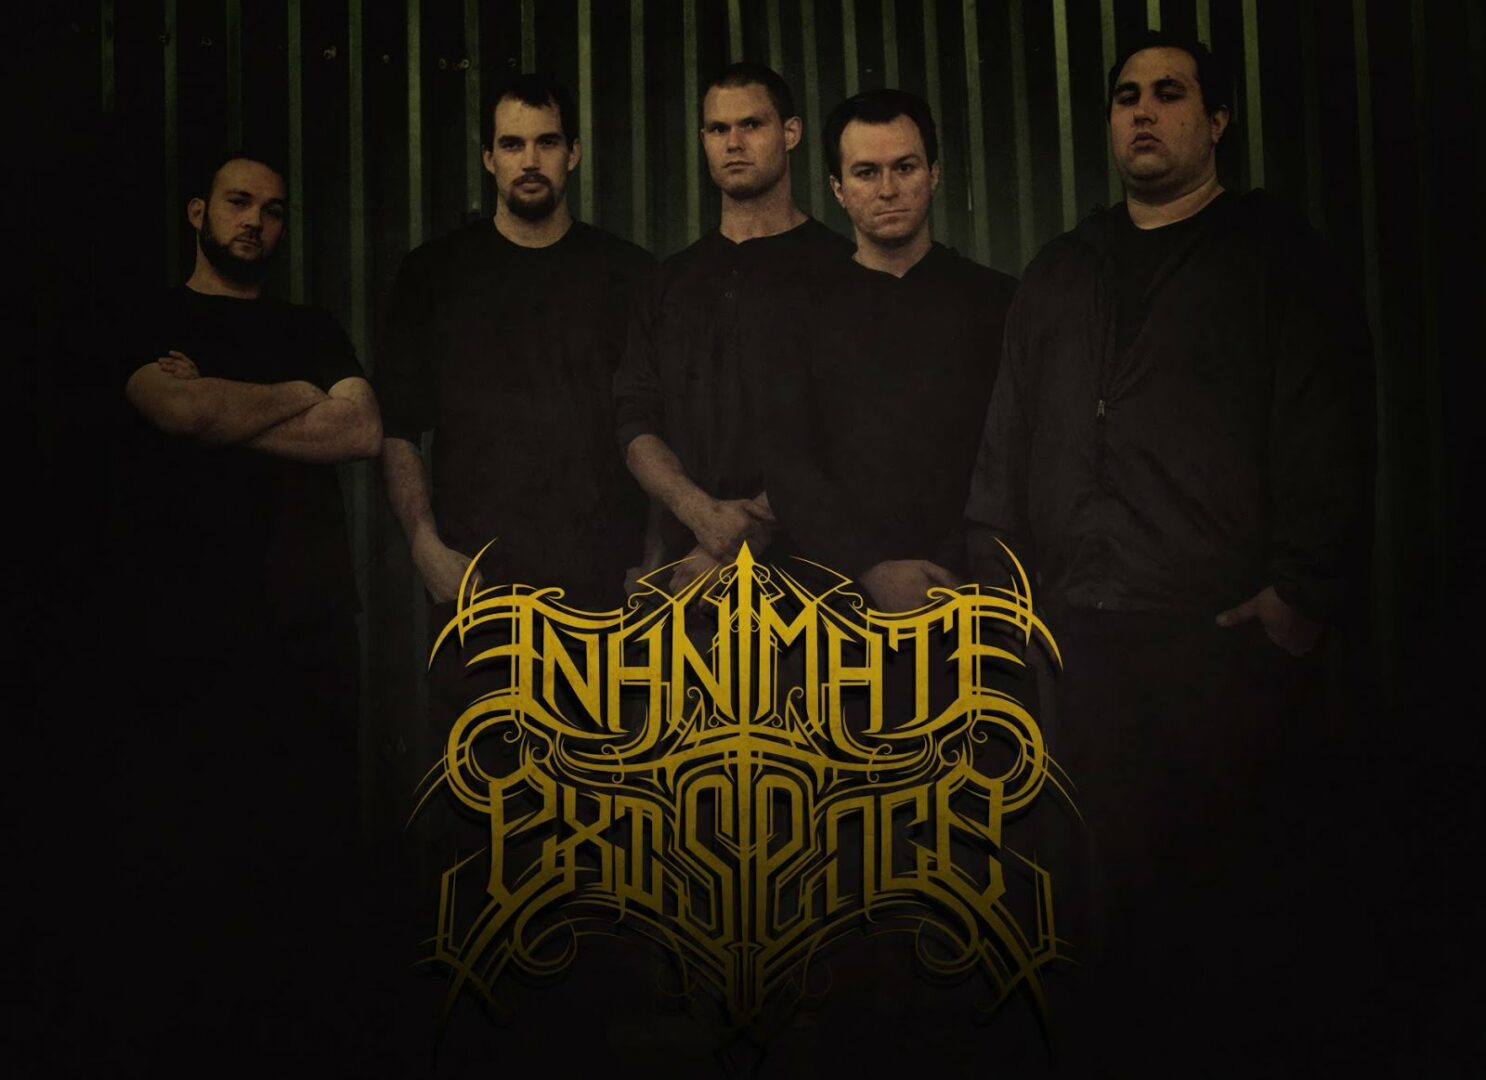 """Inanimate Existence Announces the """"Enter Into Atonement Tour 2015"""""""